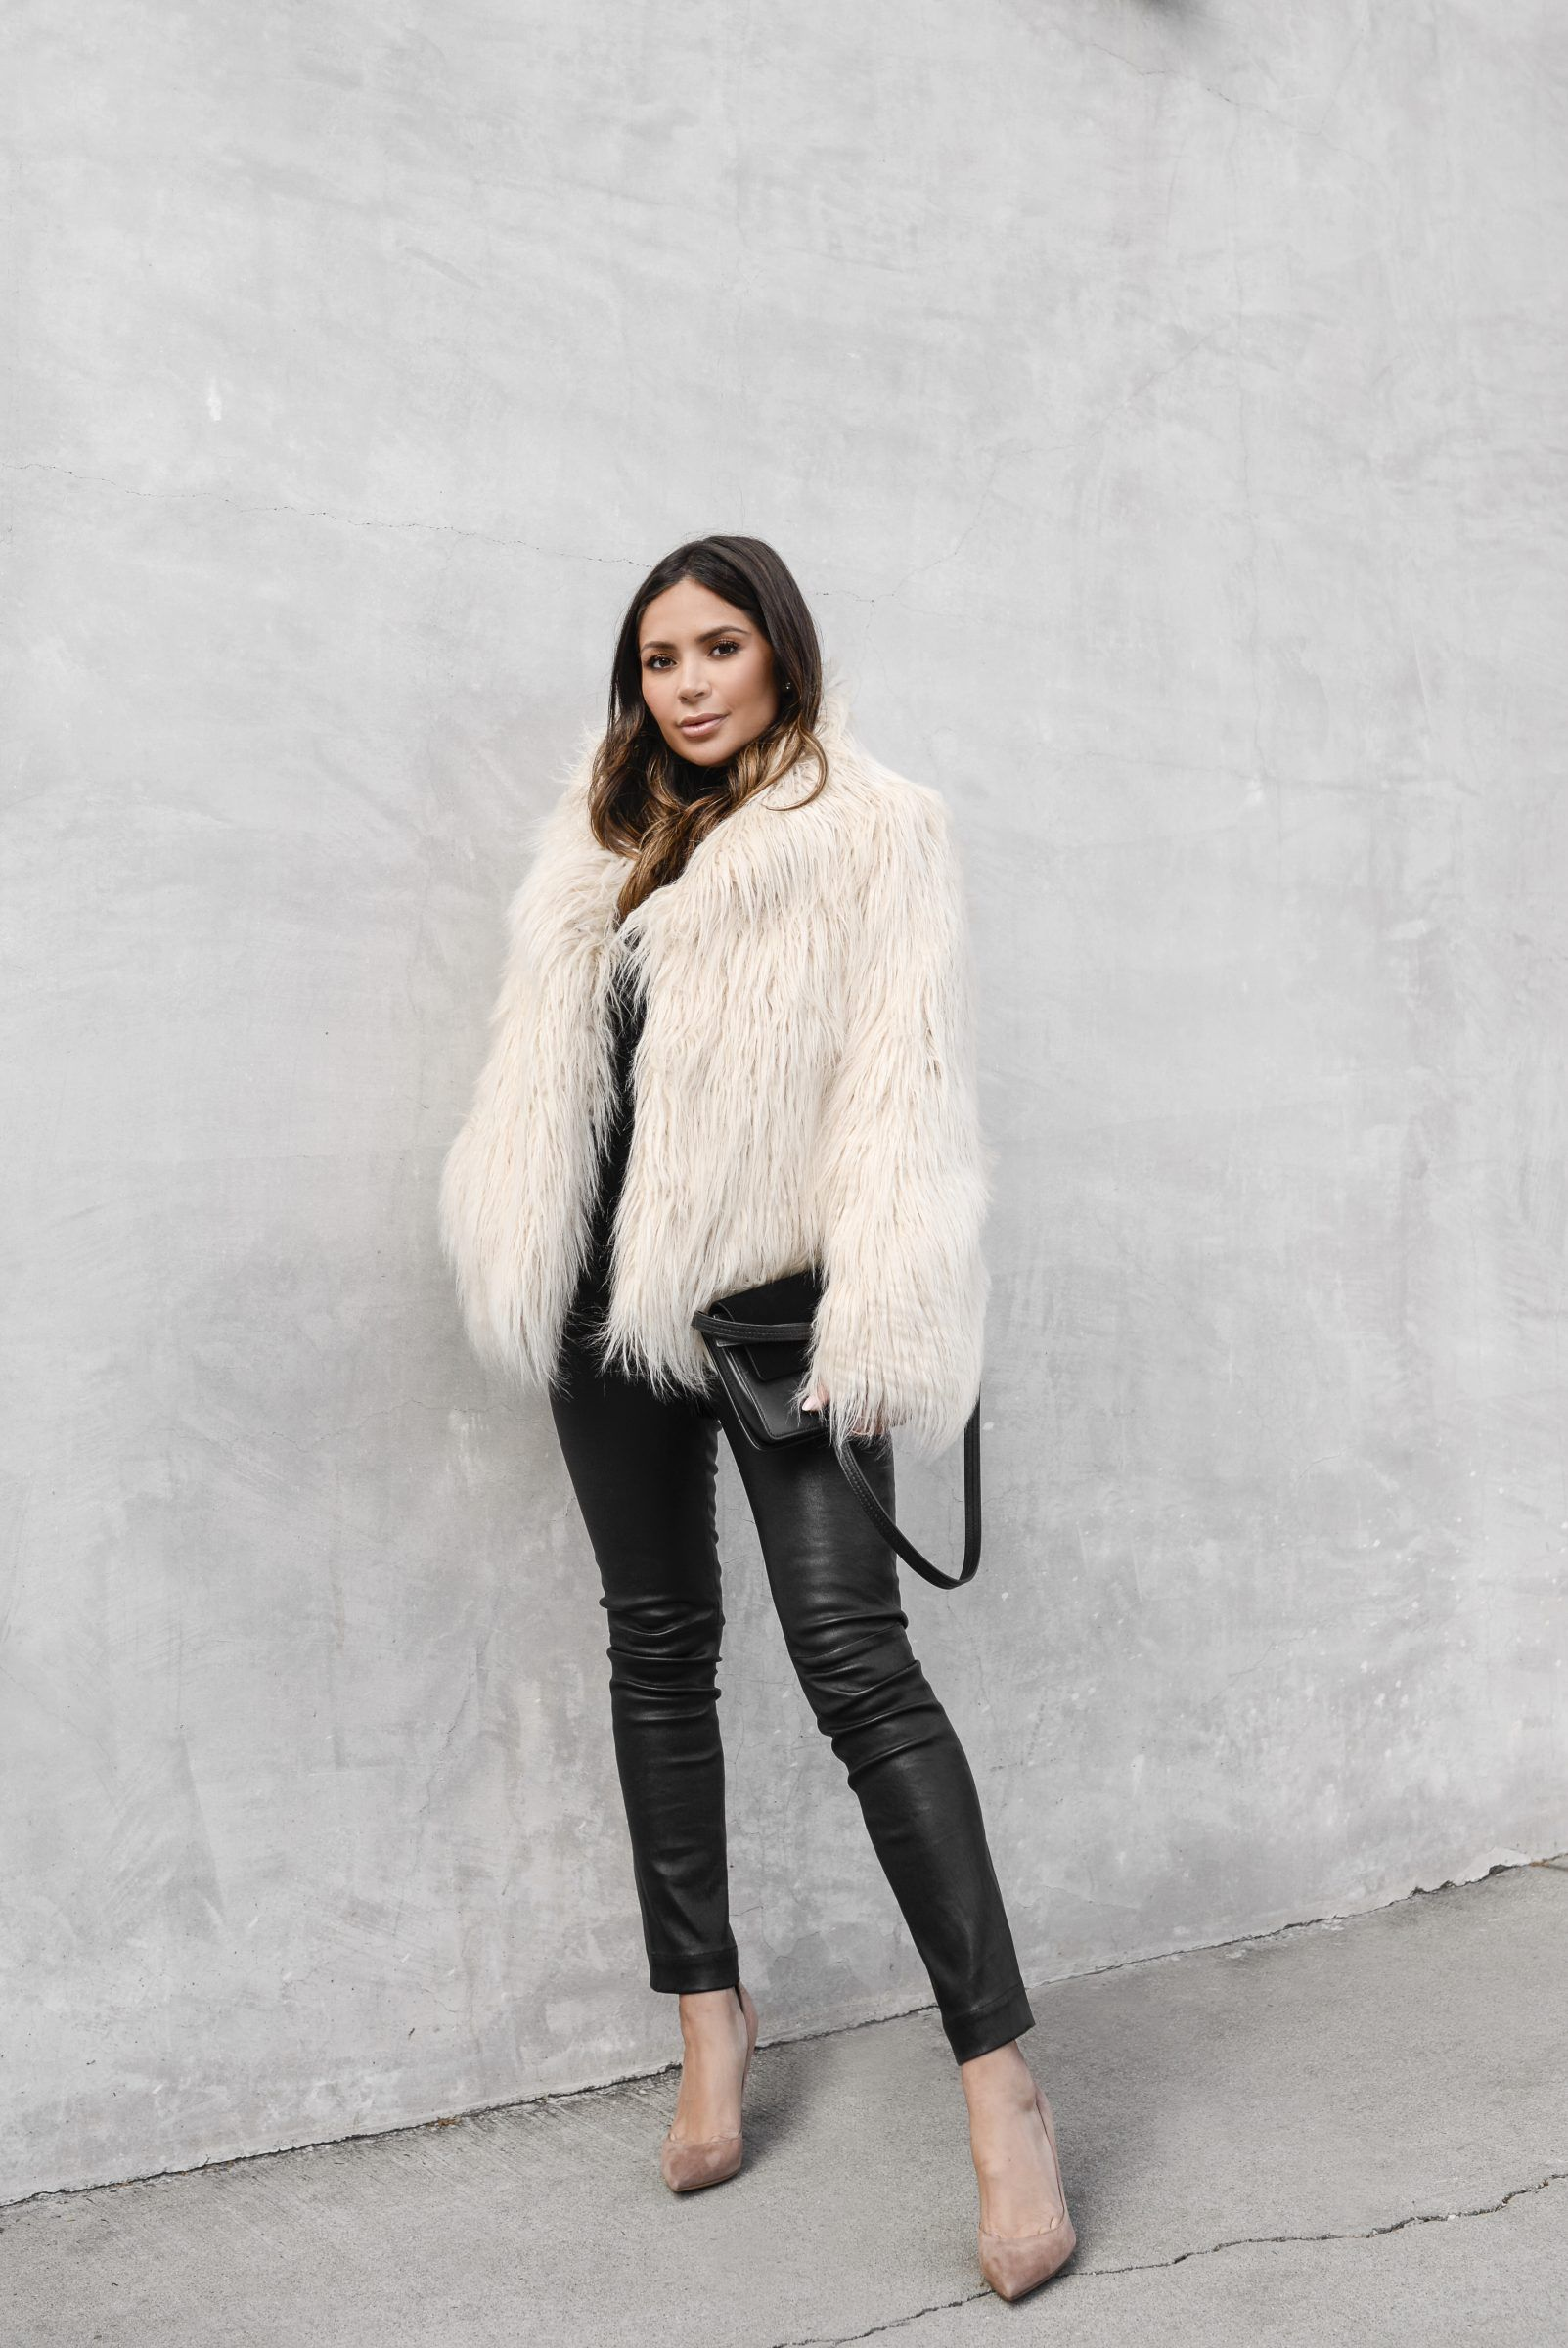 marianna-hewitt-blog-life-with-me-youtube-hair-faux-fur-coat-leather-pants